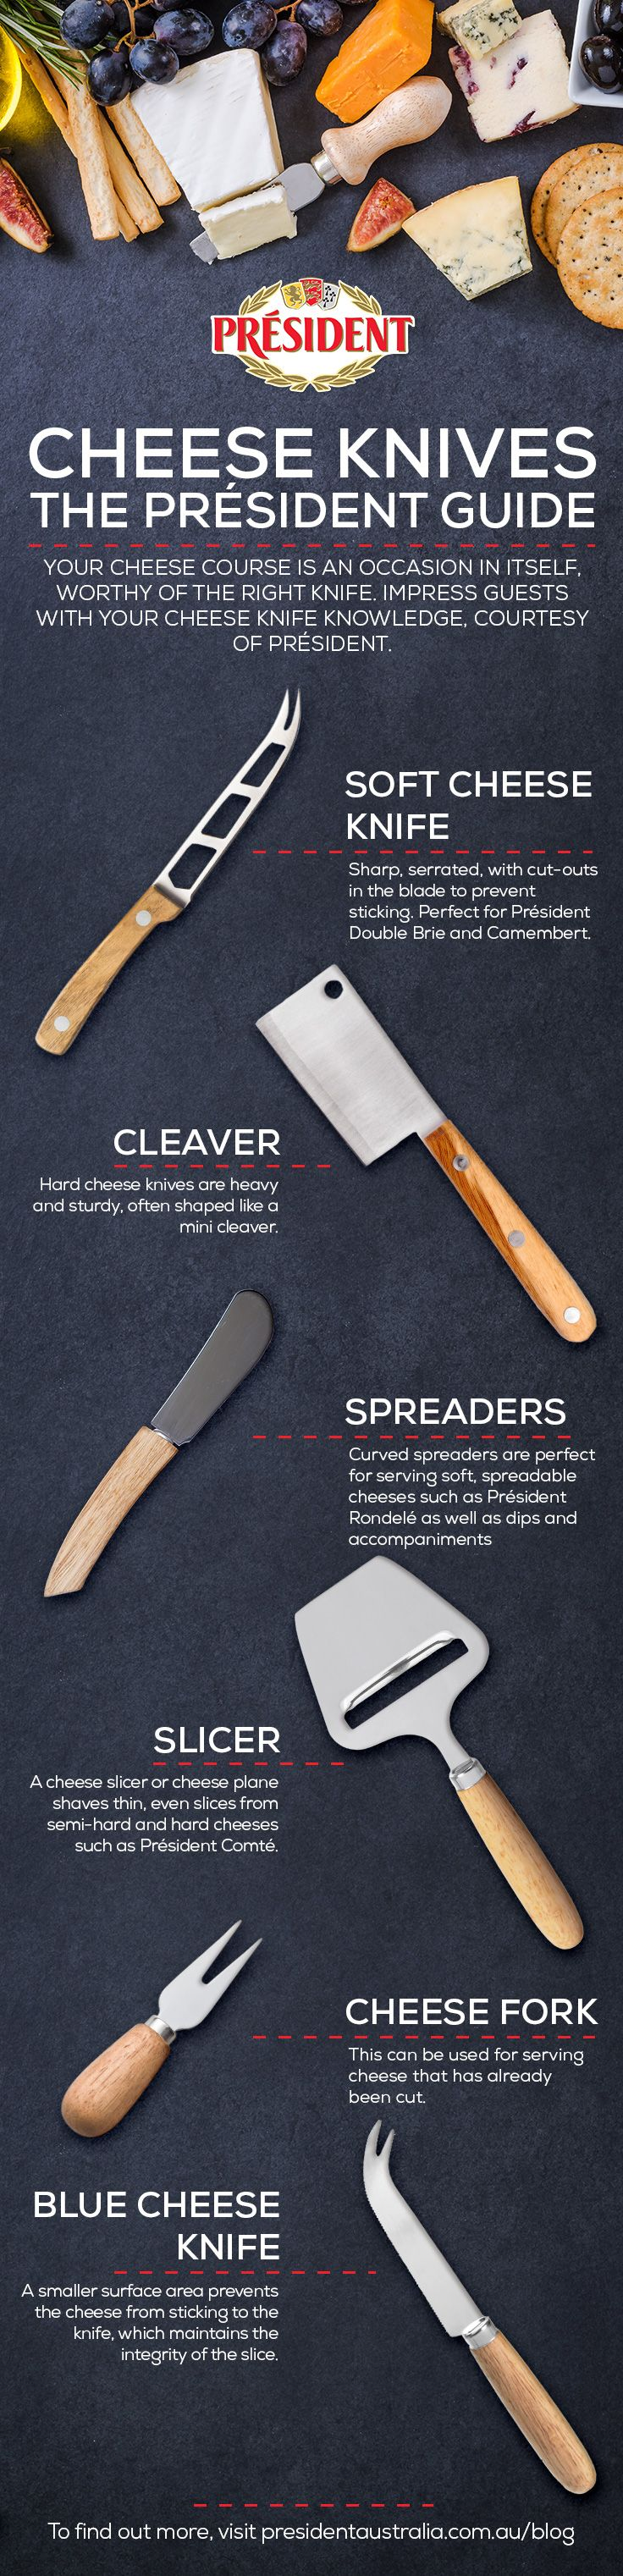 A great set of cheese knives is essential to anyone who loves cheese. Not sure which one to use? Look no further than the Président Guide to Cheese Knives. #triedforless